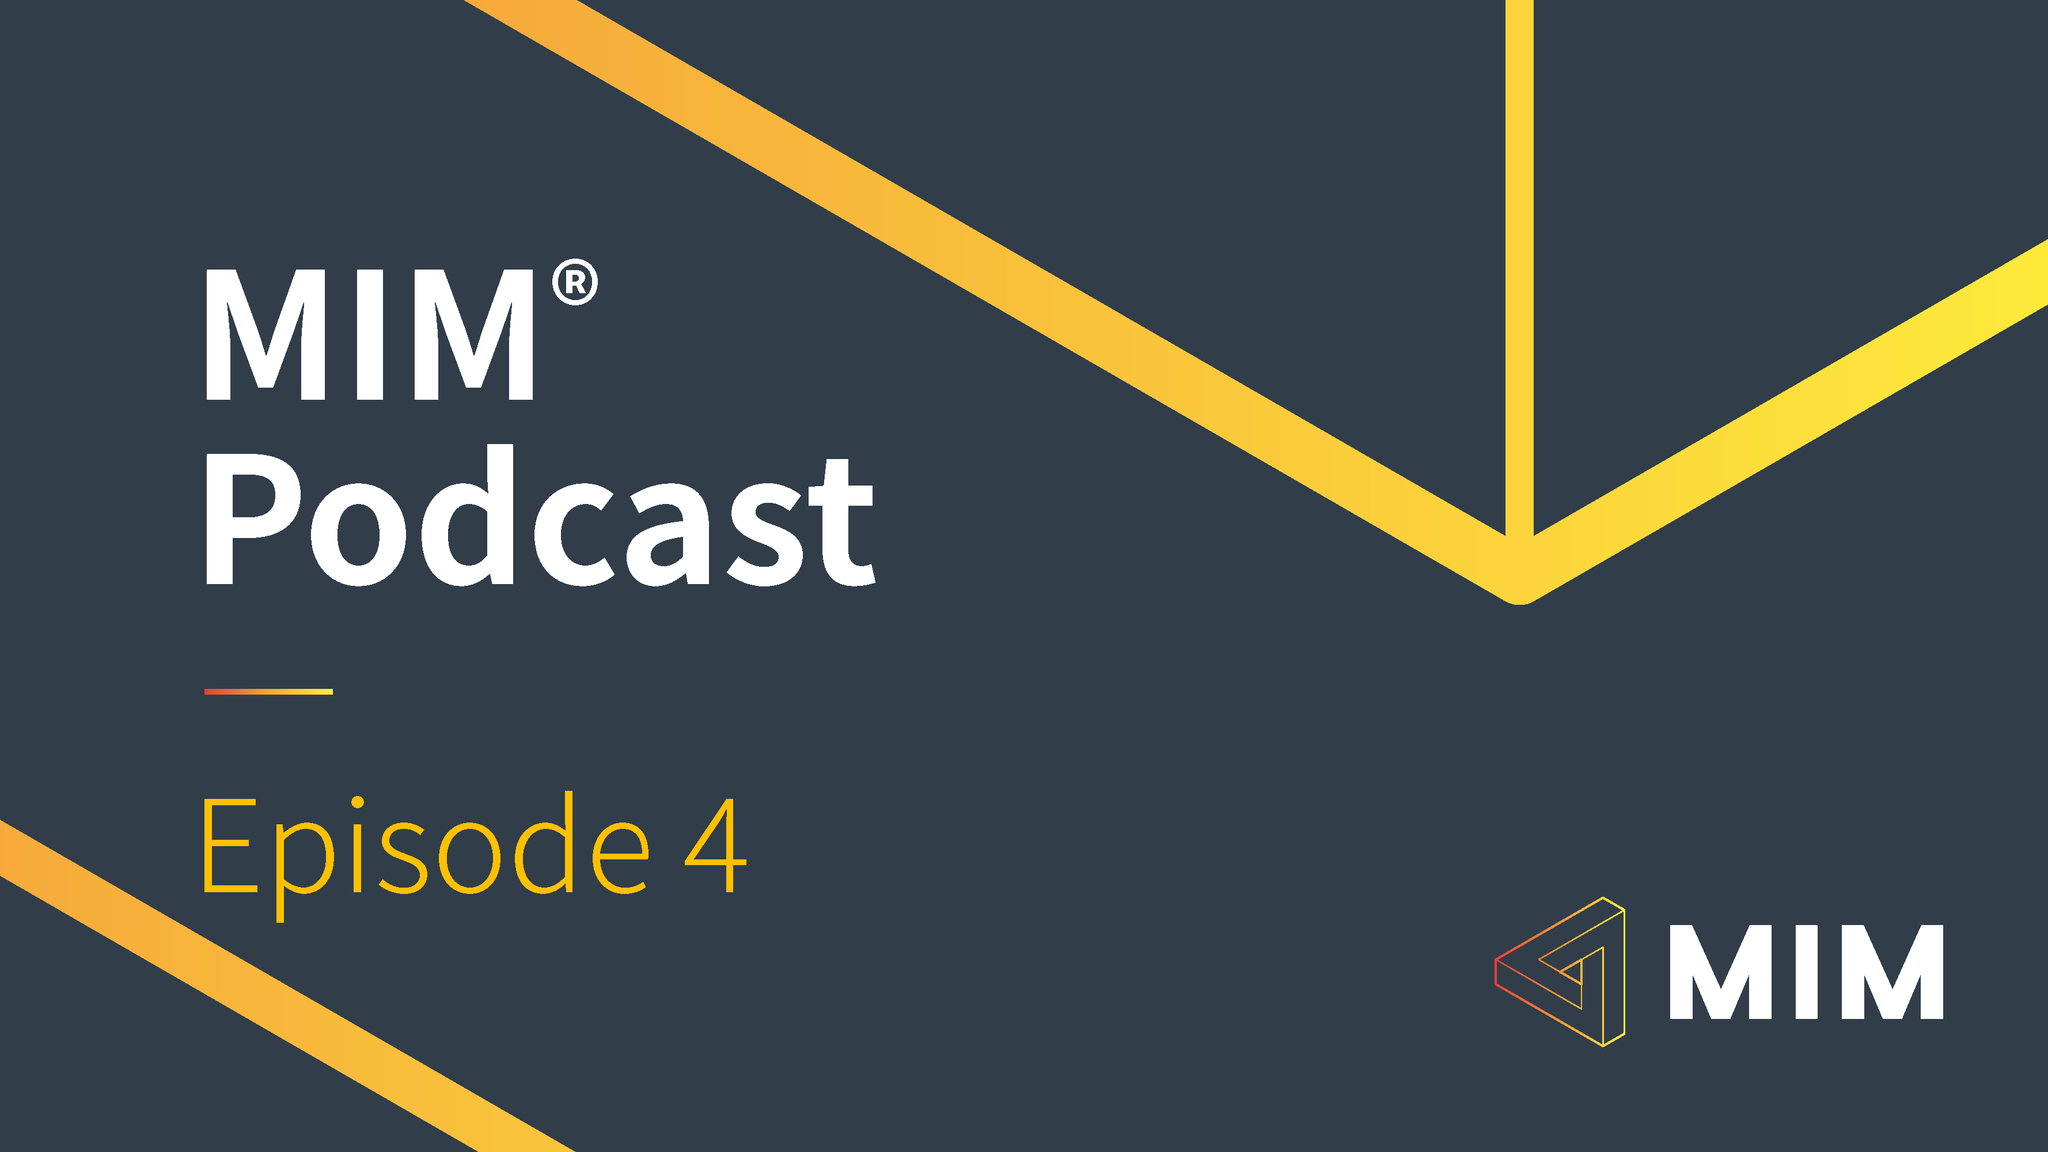 MIM Podcast Episode 4: Andrew Luria at ADP